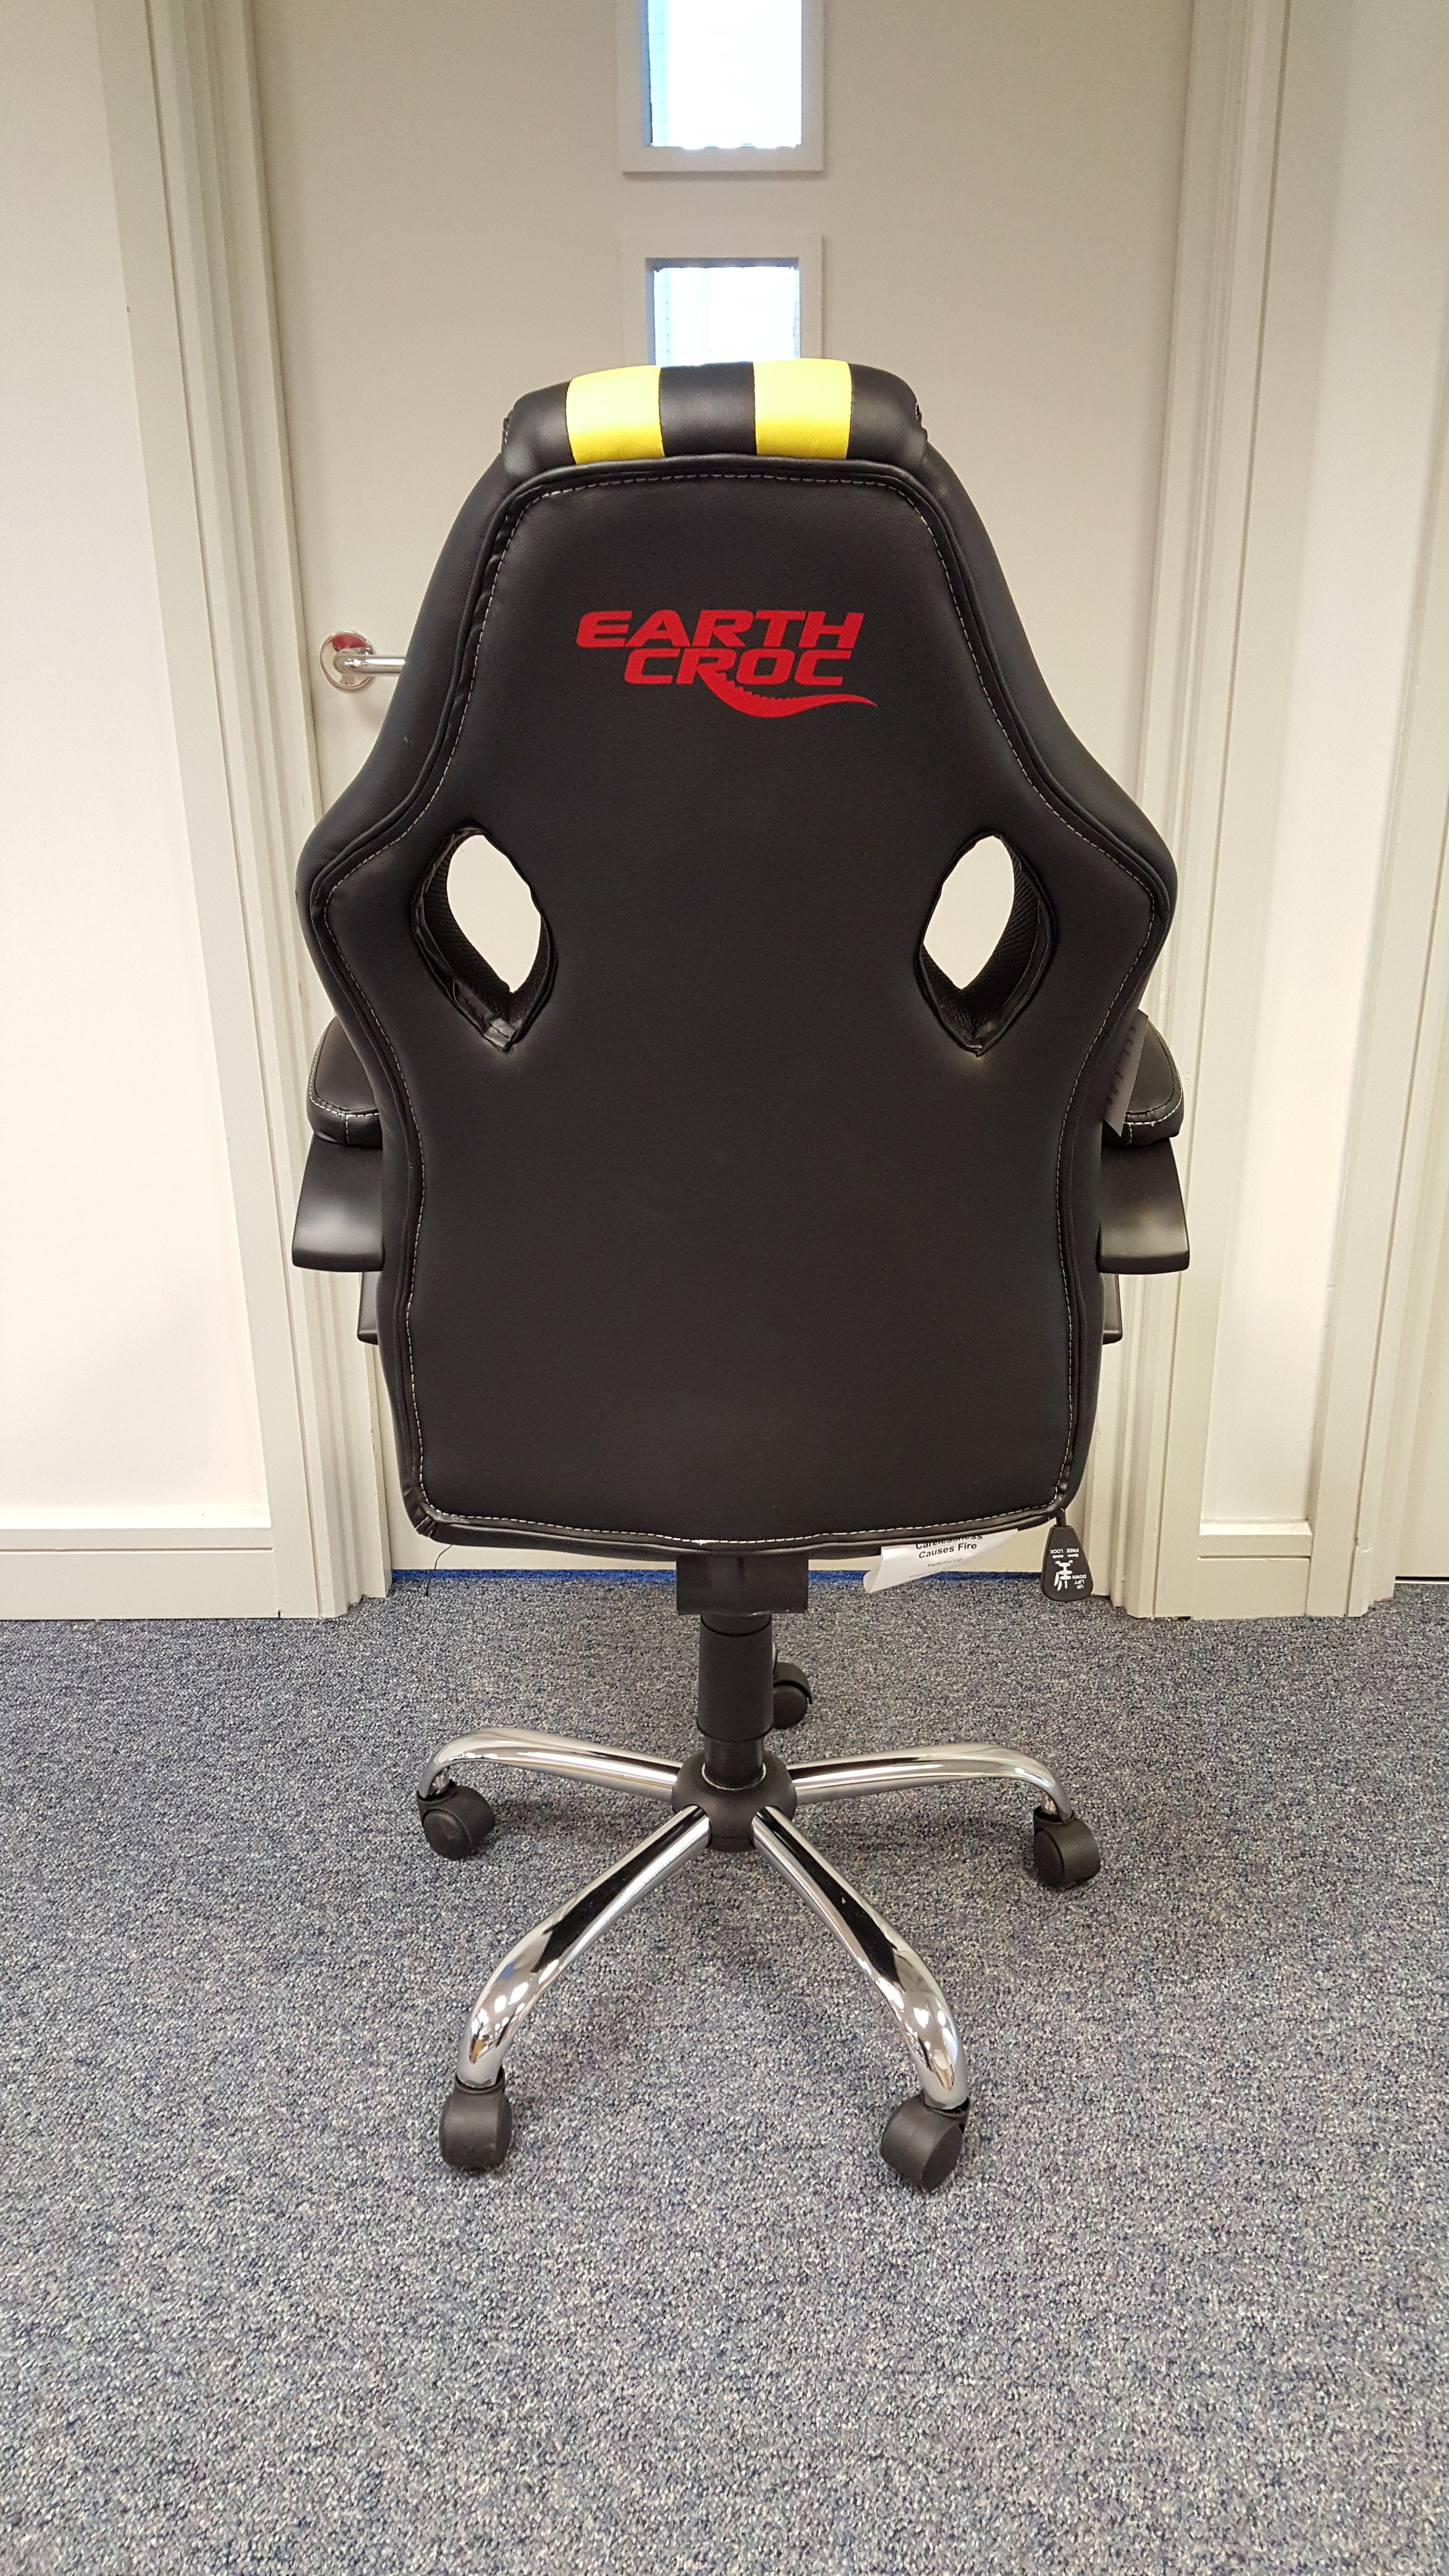 n buy uk overclockers expensive gaming series dxracer online black formula oh brands chair